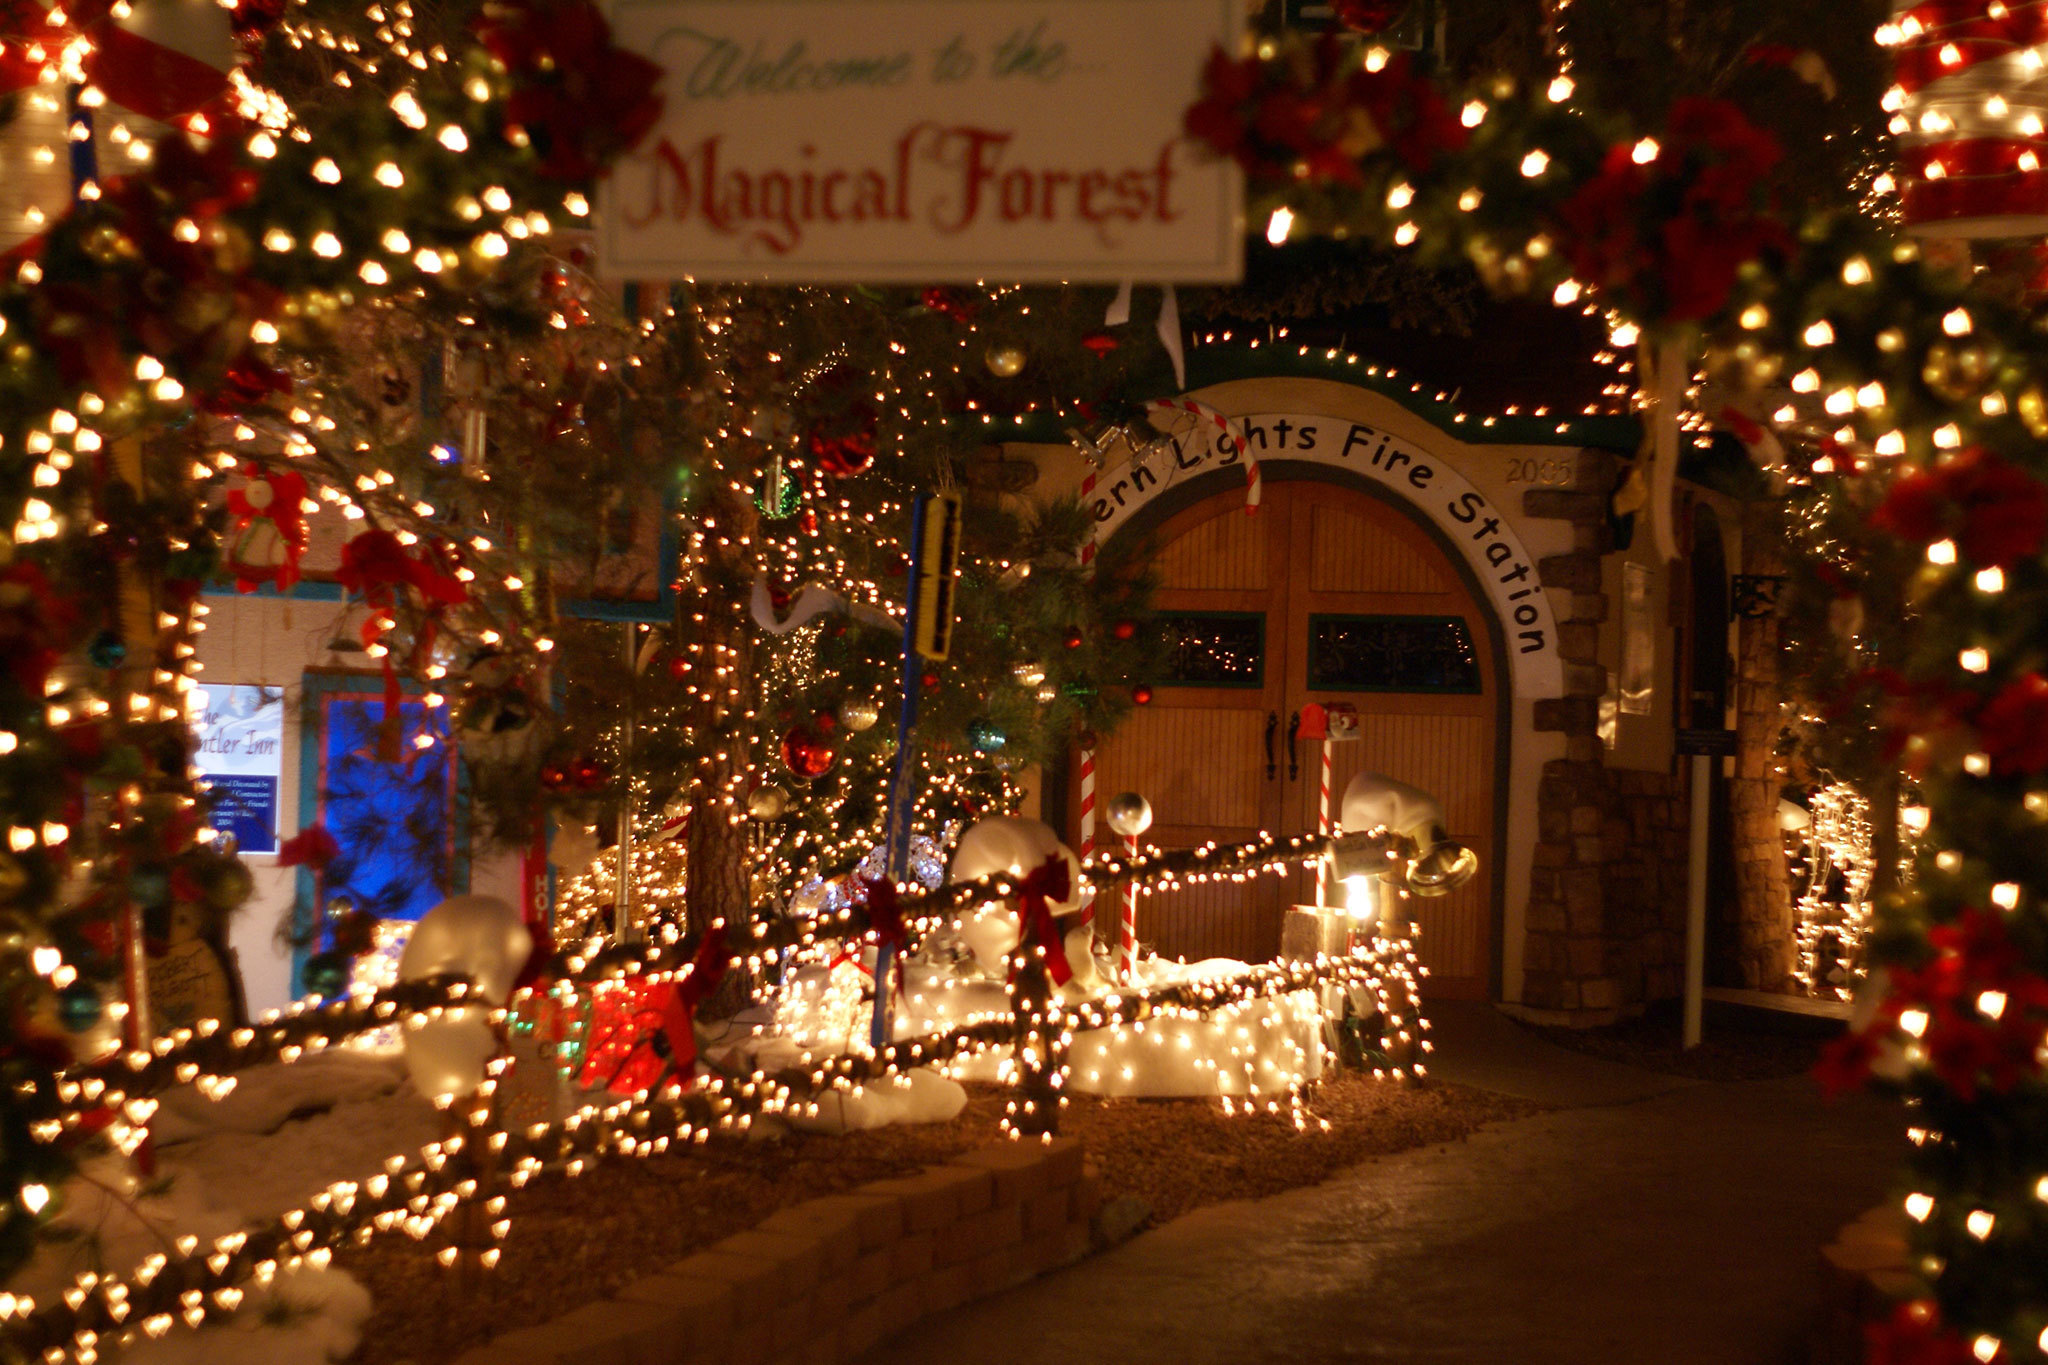 magical forest at opportunity village - Lights For Christmas Village